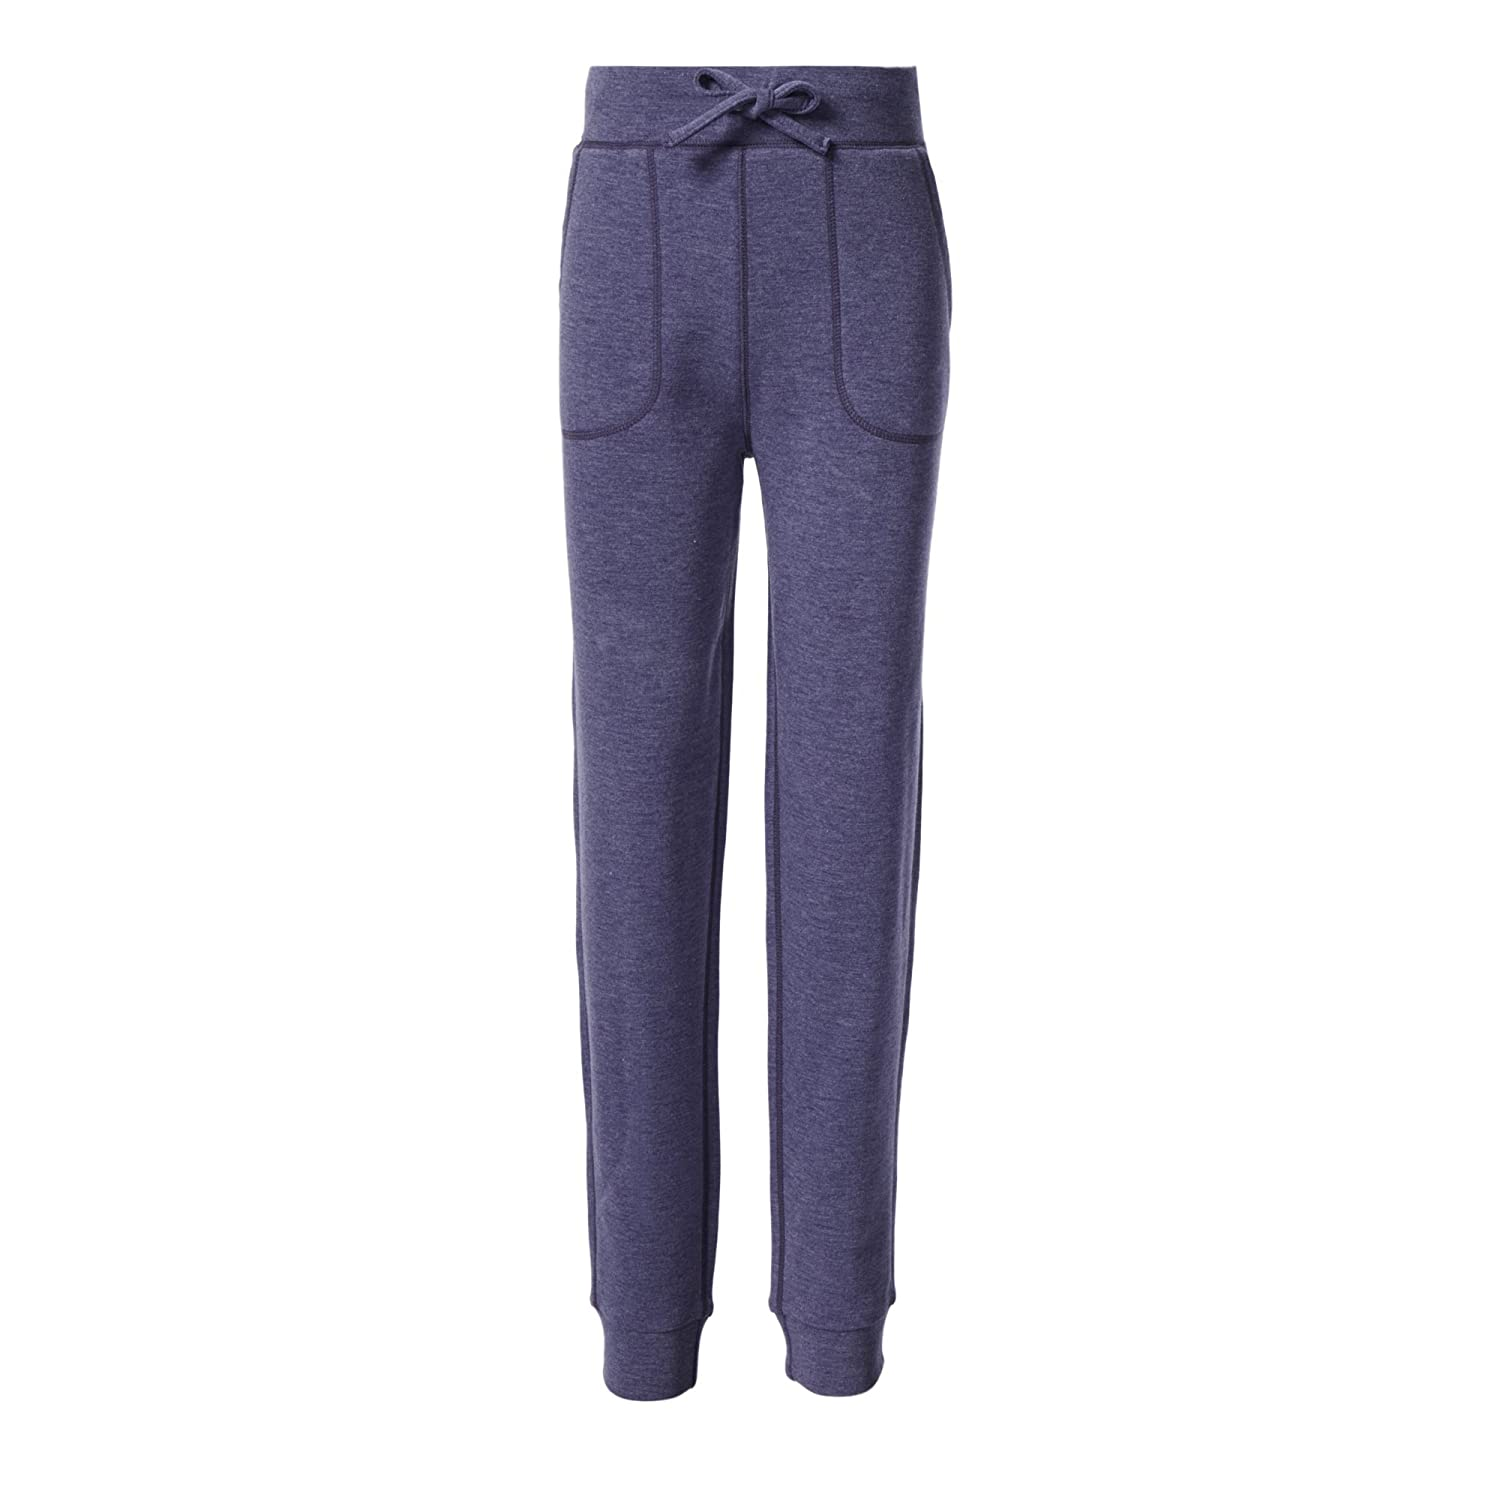 32 DEGREES Girls Faux Cashmere Jogger Pants